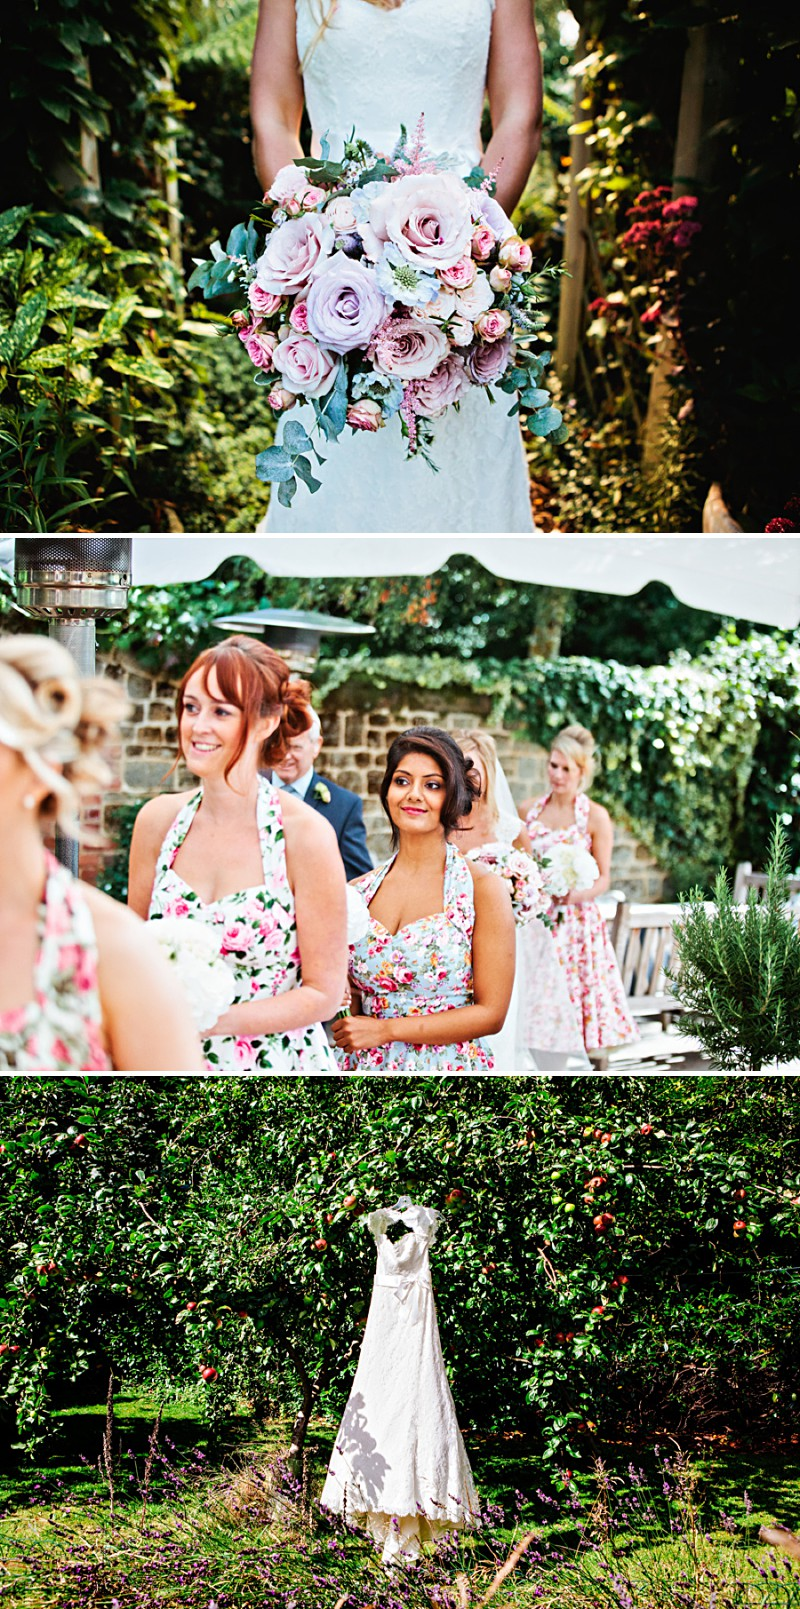 A Humanist Wedding At Bartholomew Barn In West Sussex With A Paloma Blanca 'Amber' Dress And Photography By Andy Squires._0001